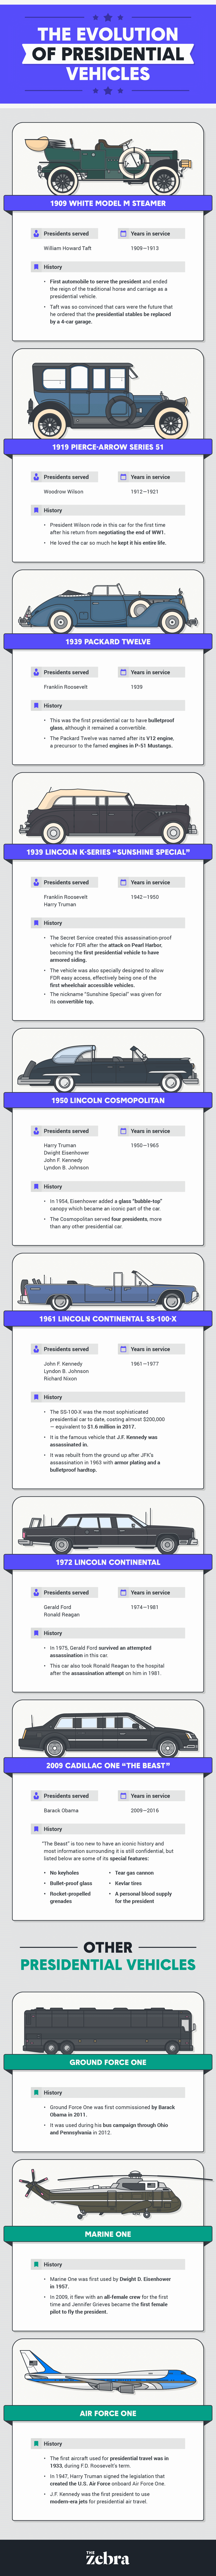 historical presidential cars